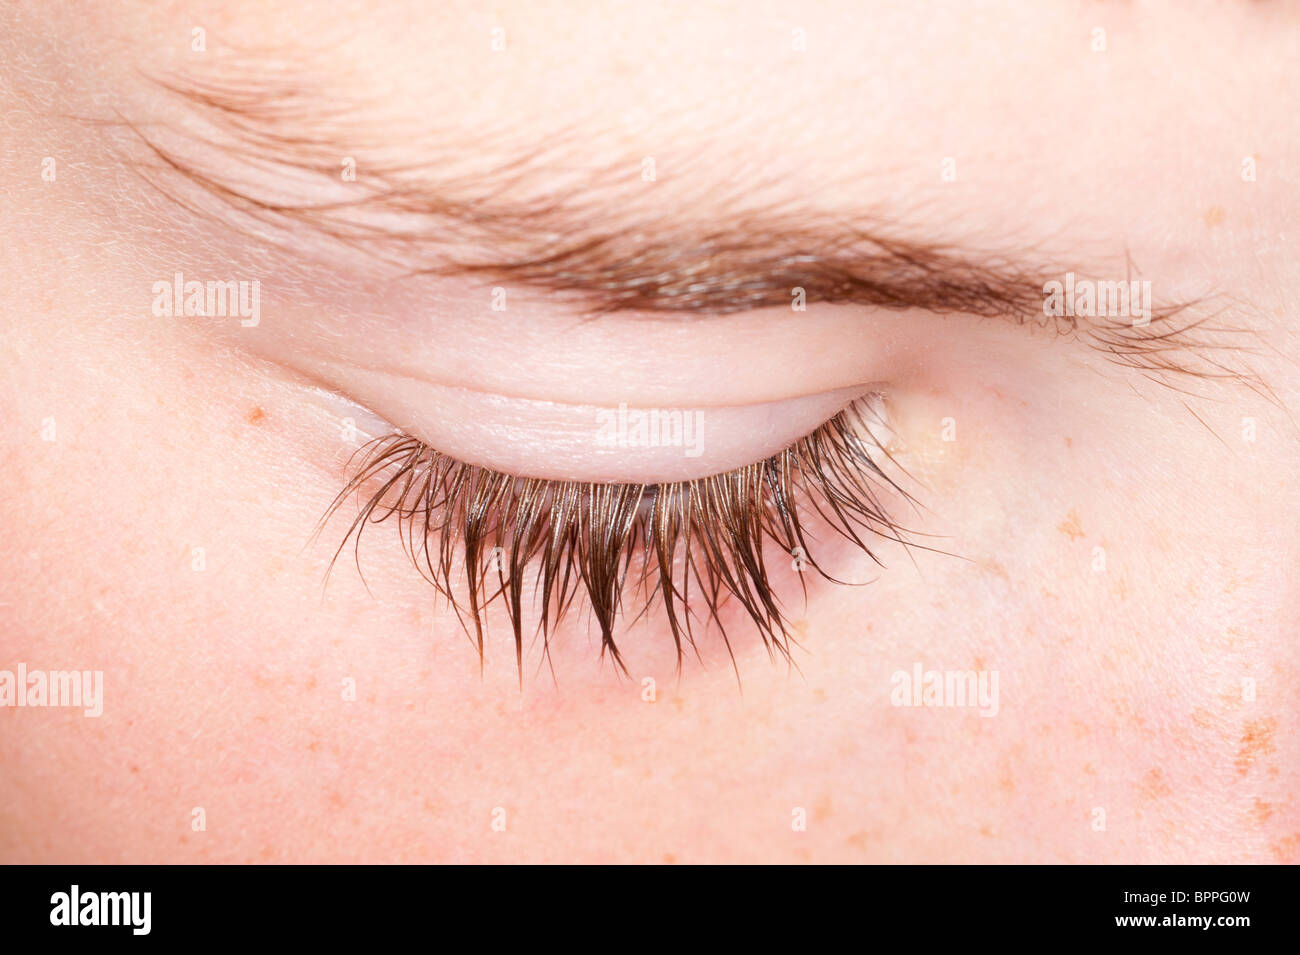 A close up of ten year old boys eyelash in the Uk - Stock Image